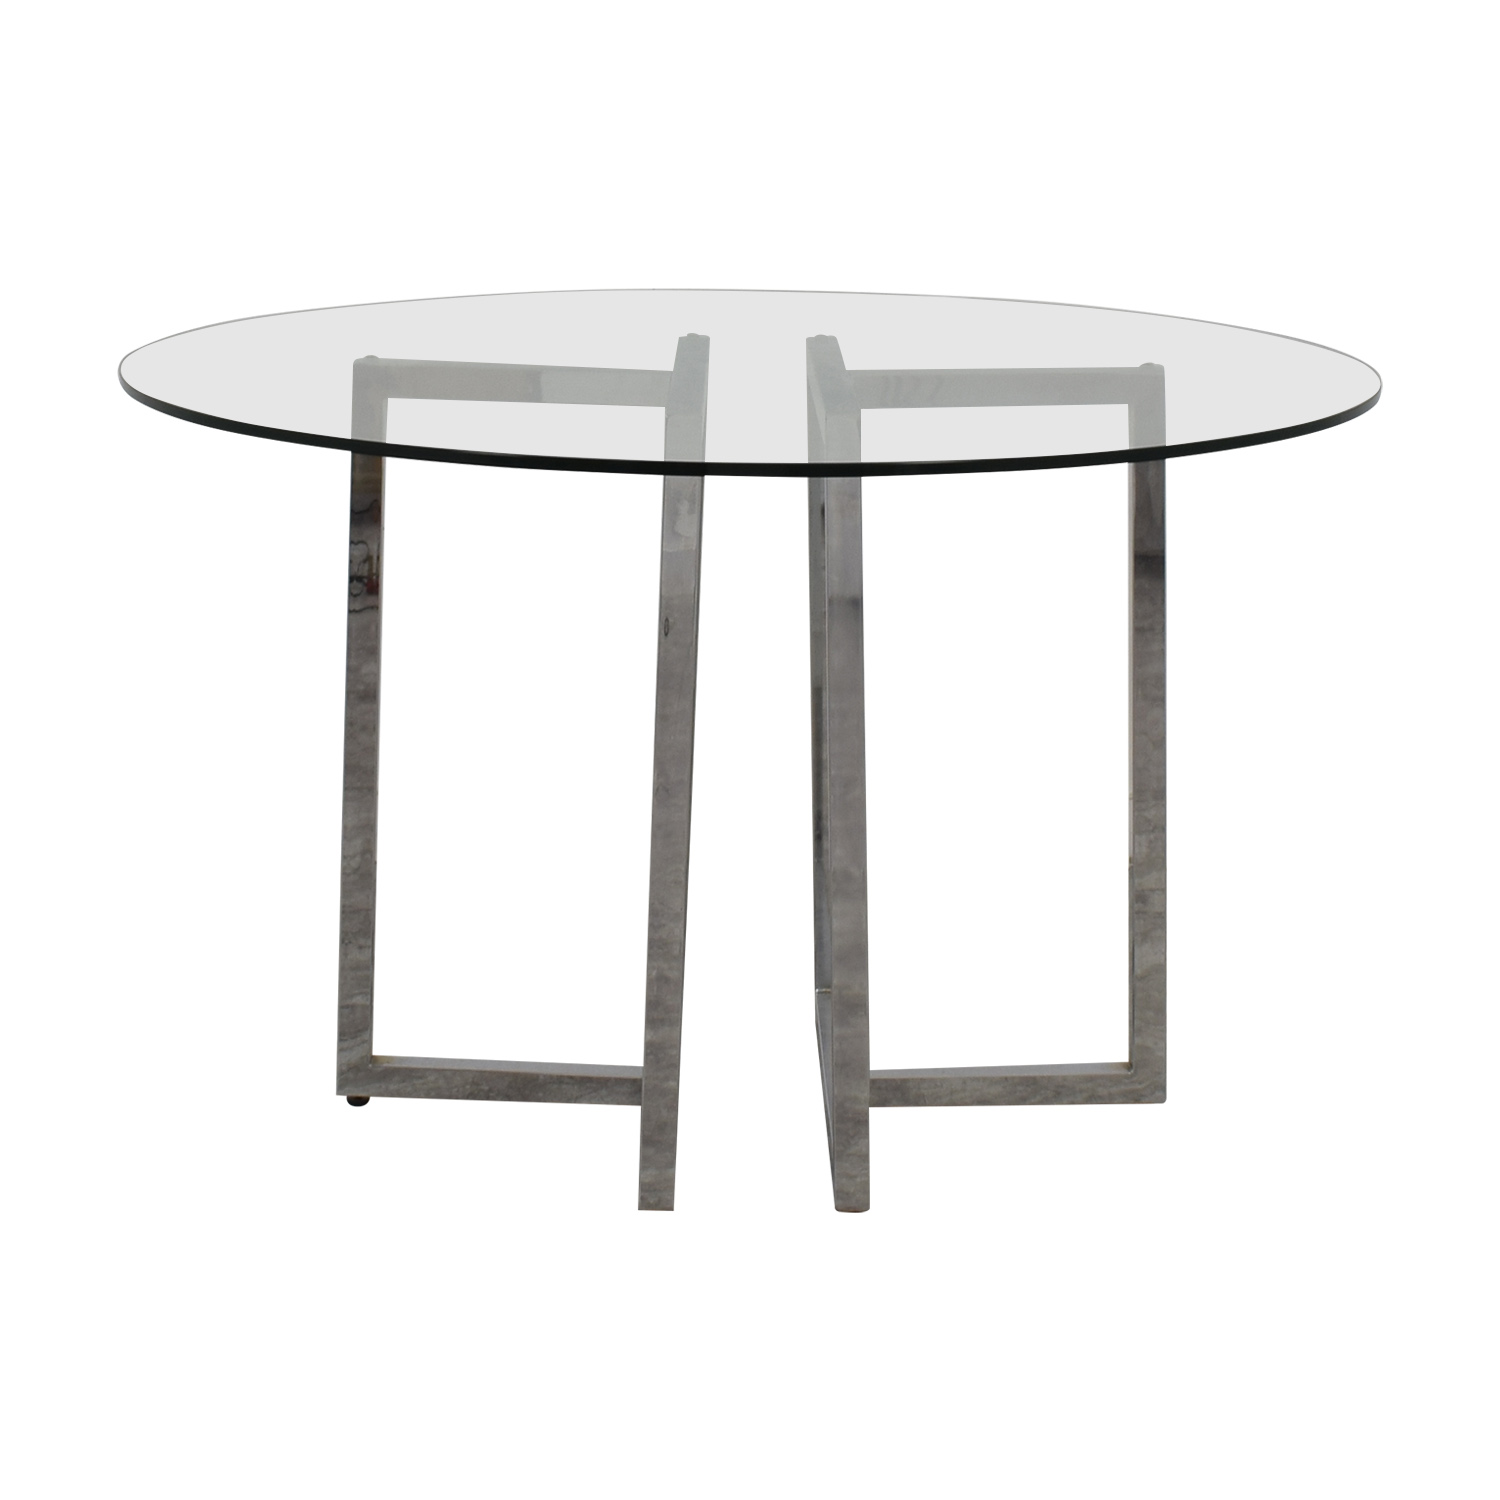 OFF CB CB Silverado Glass Round Dining Table Tables - Cb2 round glass table